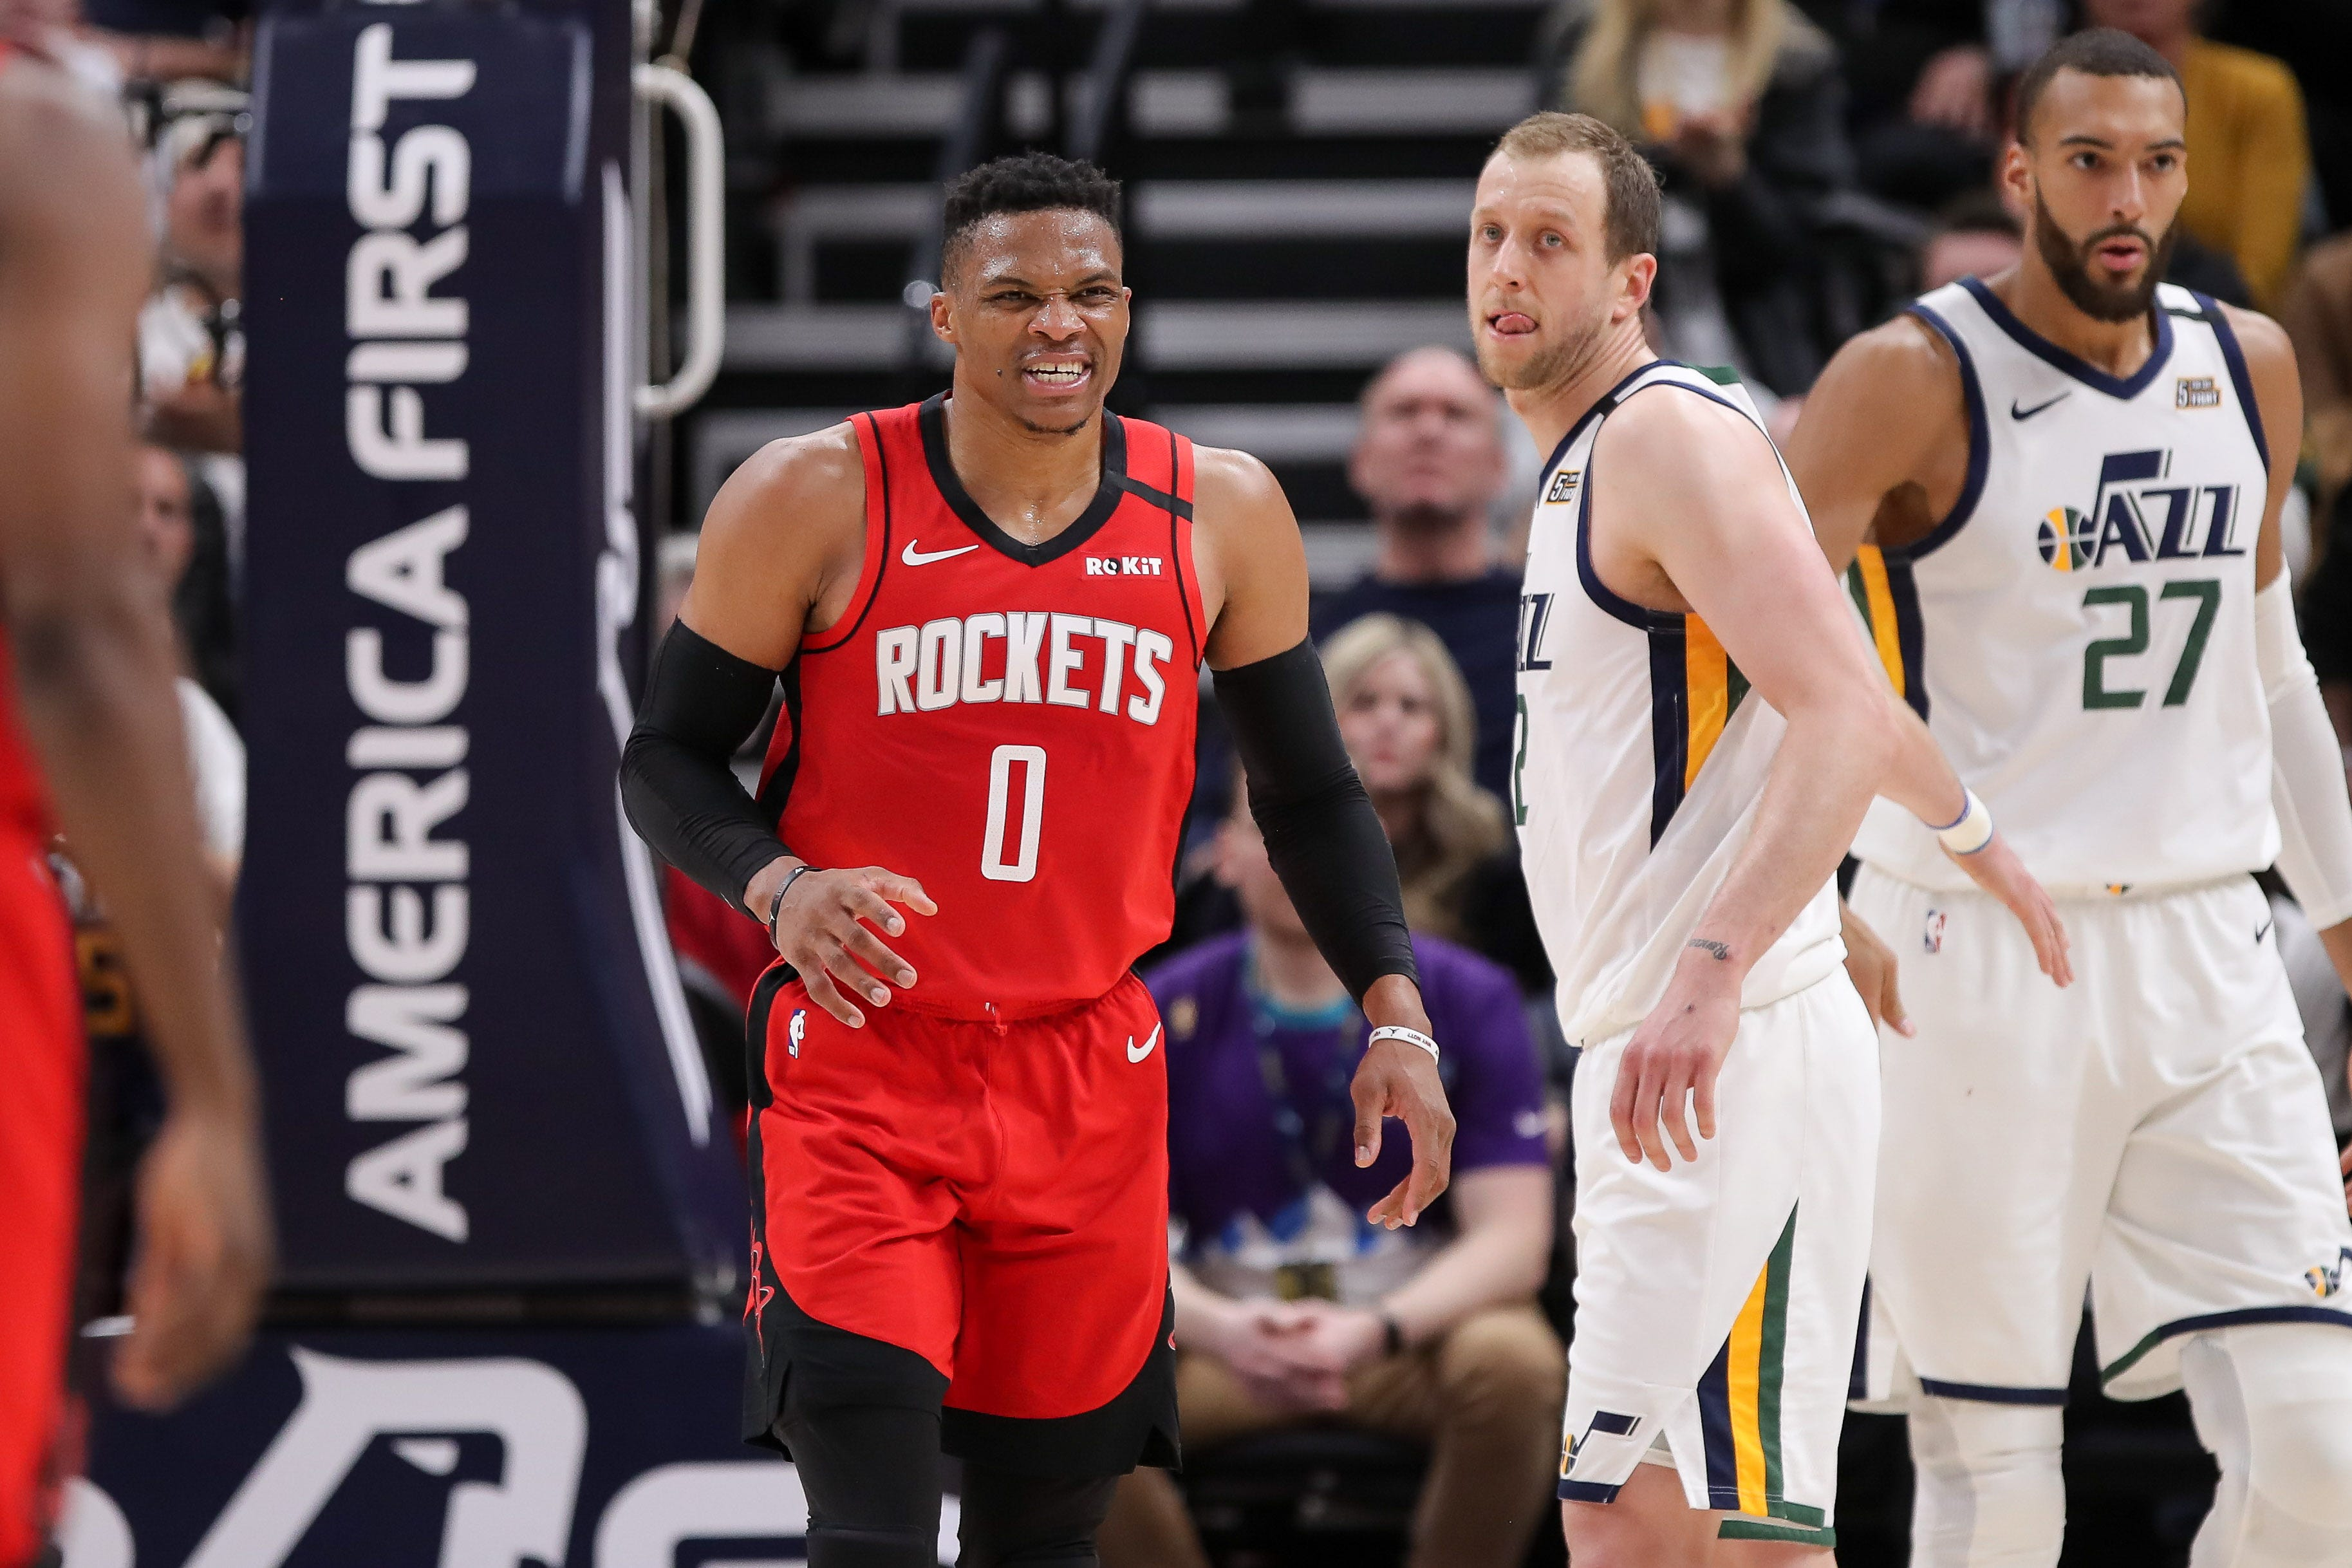 While parting with John Wall is hard, Wizards know getting Russell Westbrook is 'right thing'